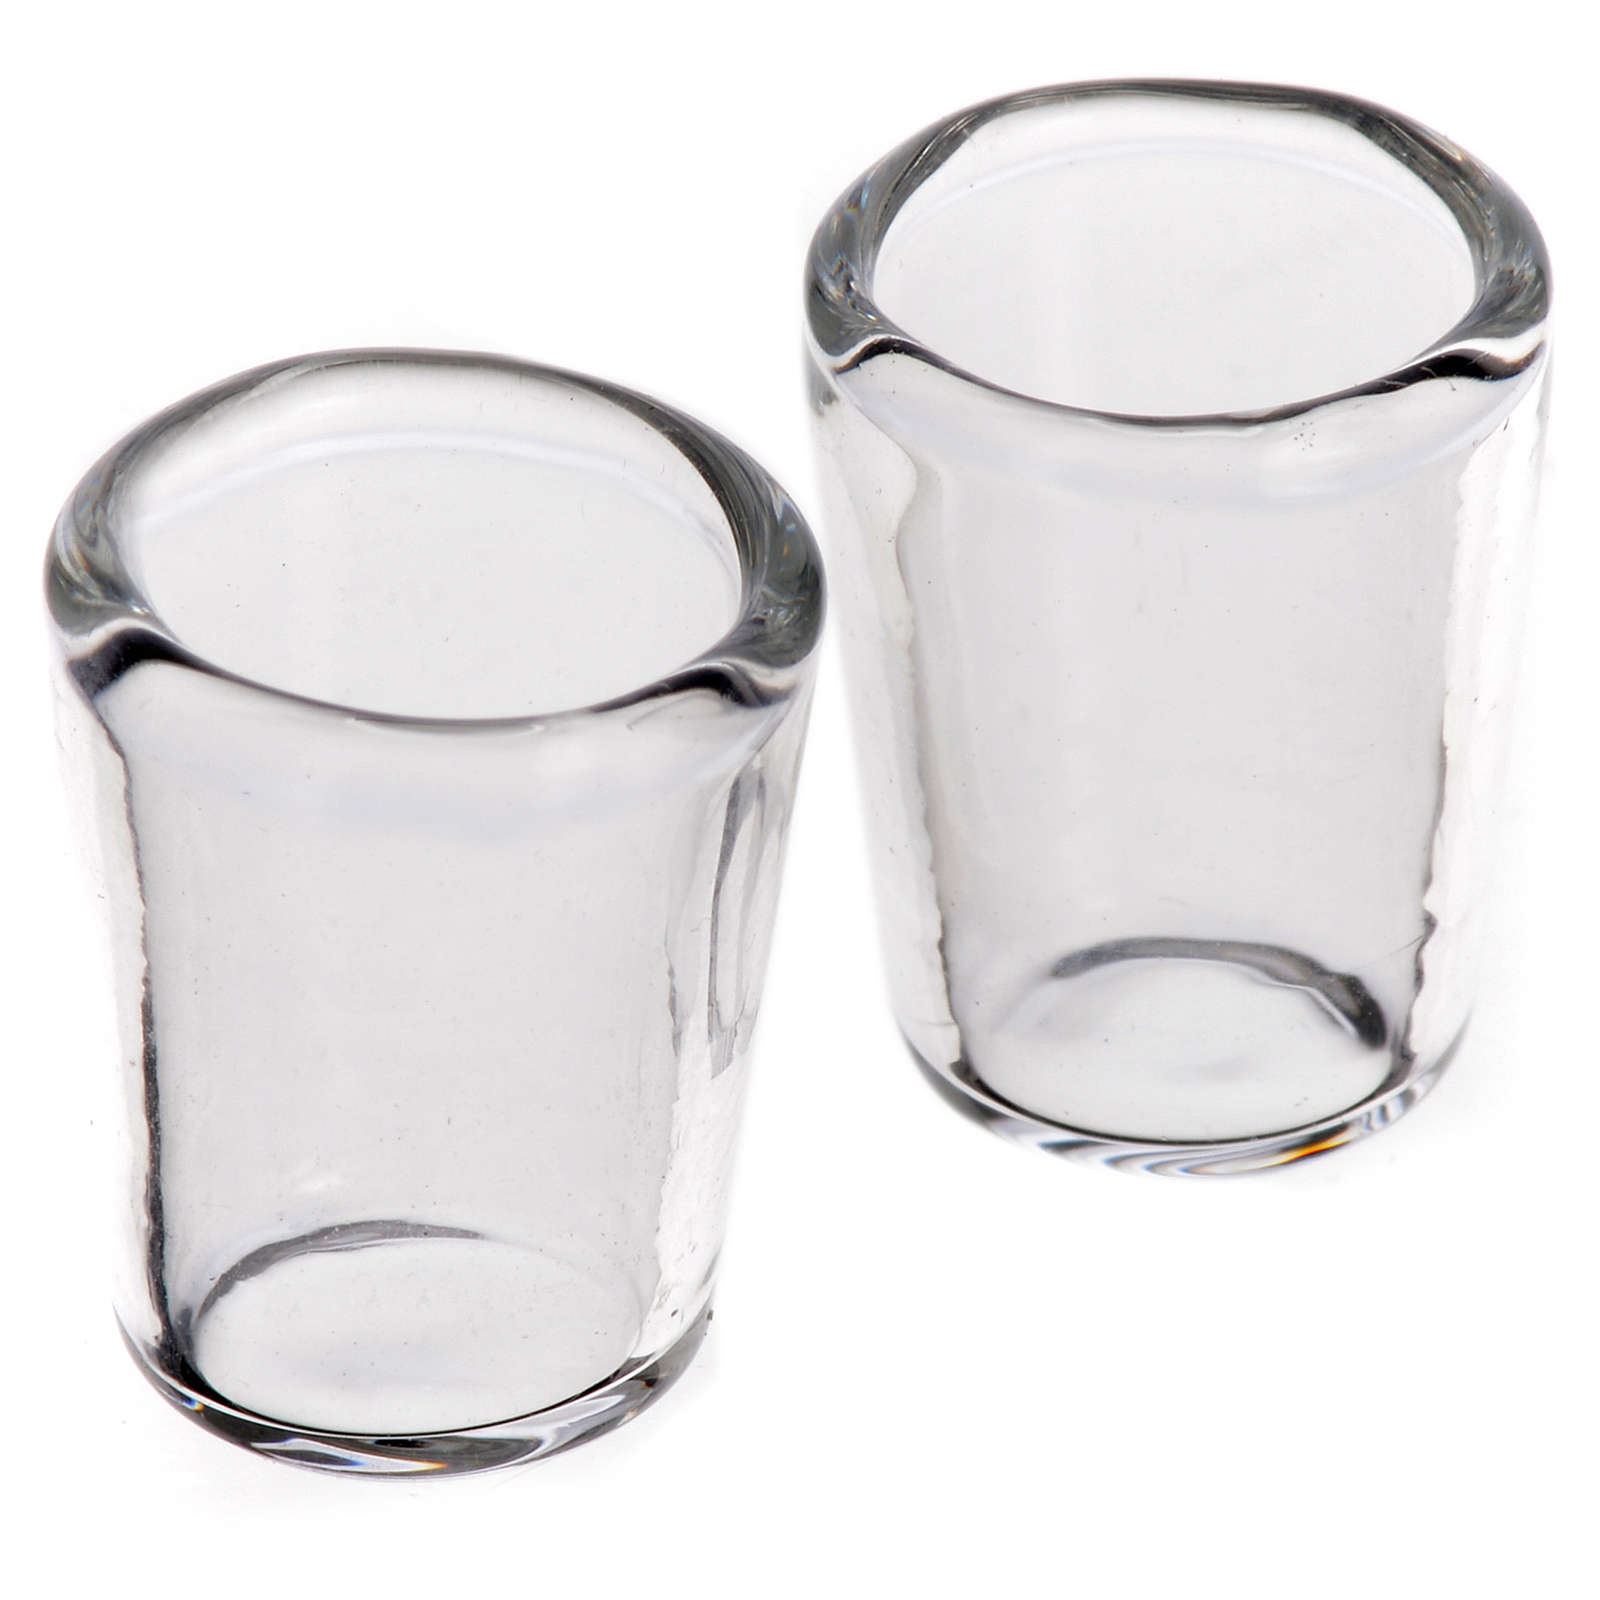 Glass cup, 0.8x0.5mm for nativities, set of 2 4